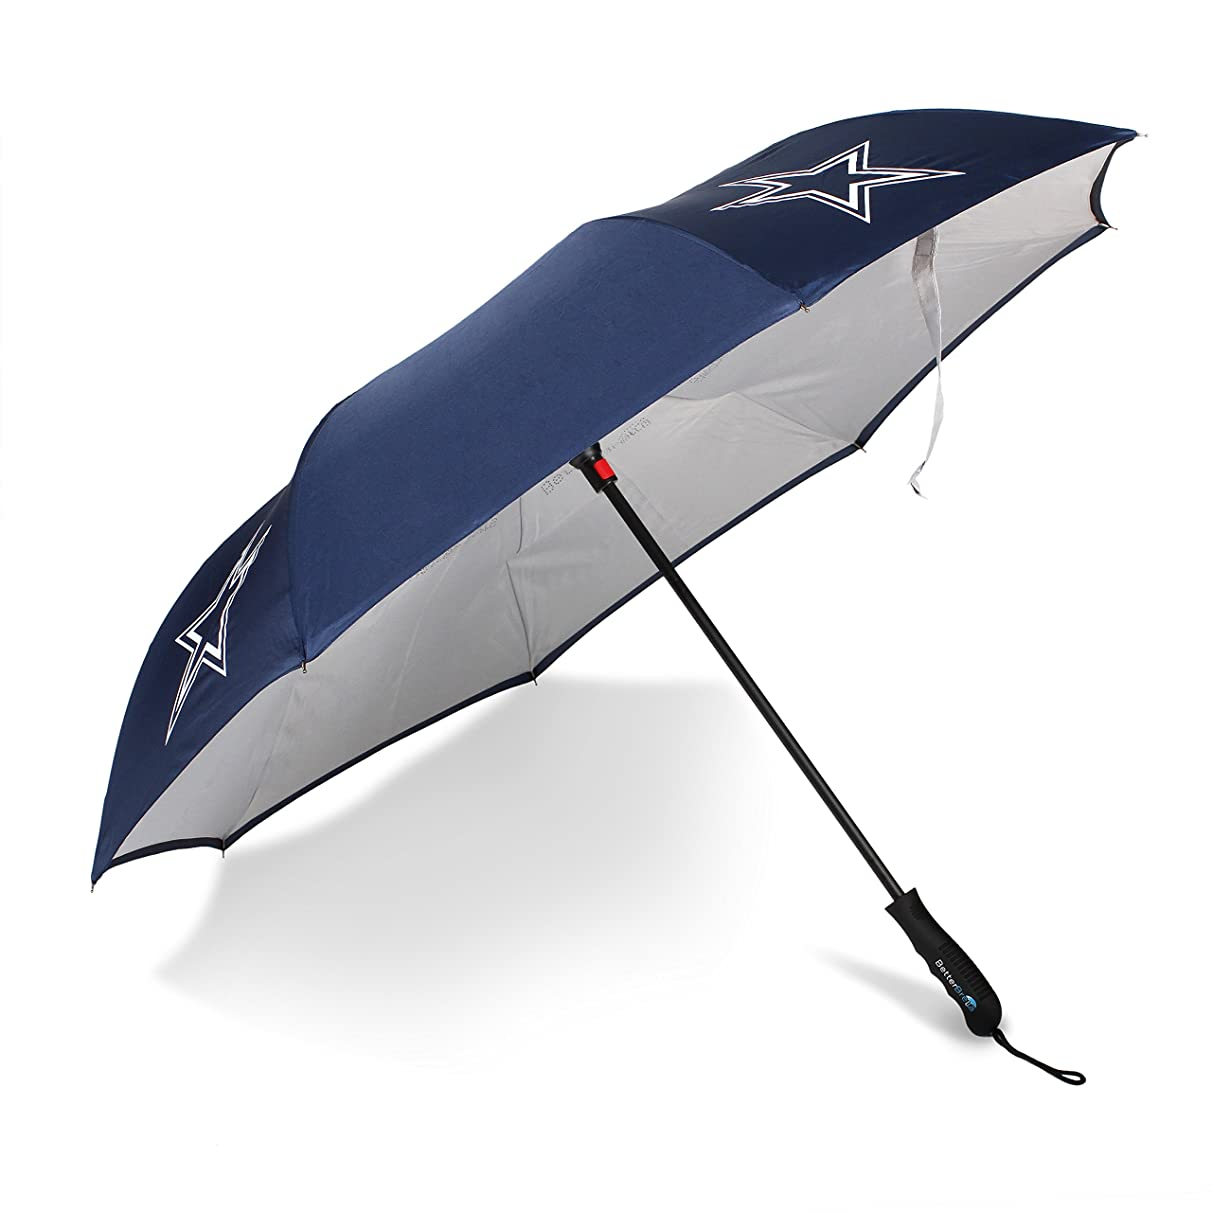 NFL Betta Brella Wind-Proof Umbrella